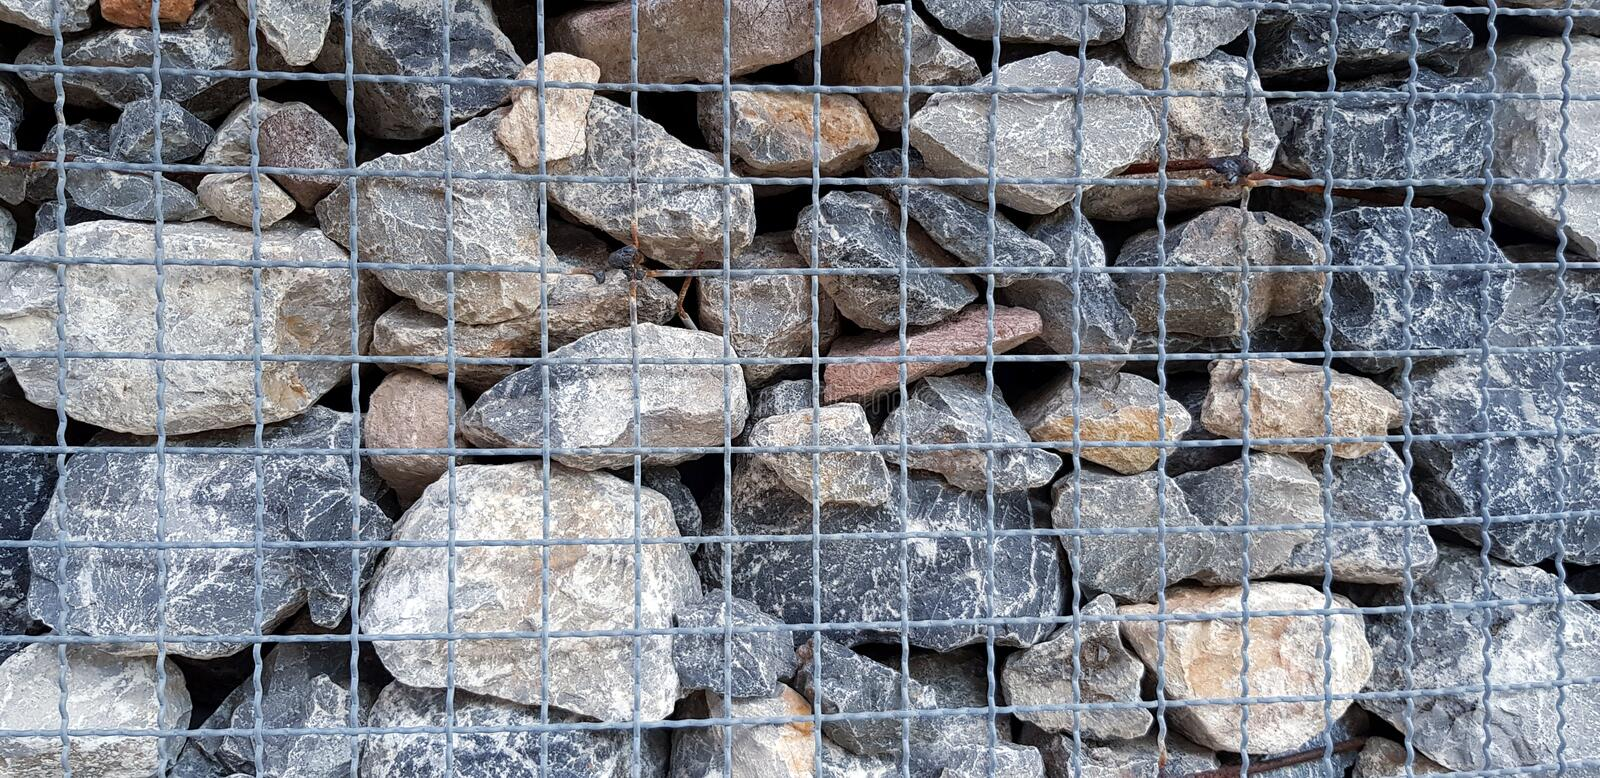 Many rock, stone or limestone in steel netting or net barrier for background stock images